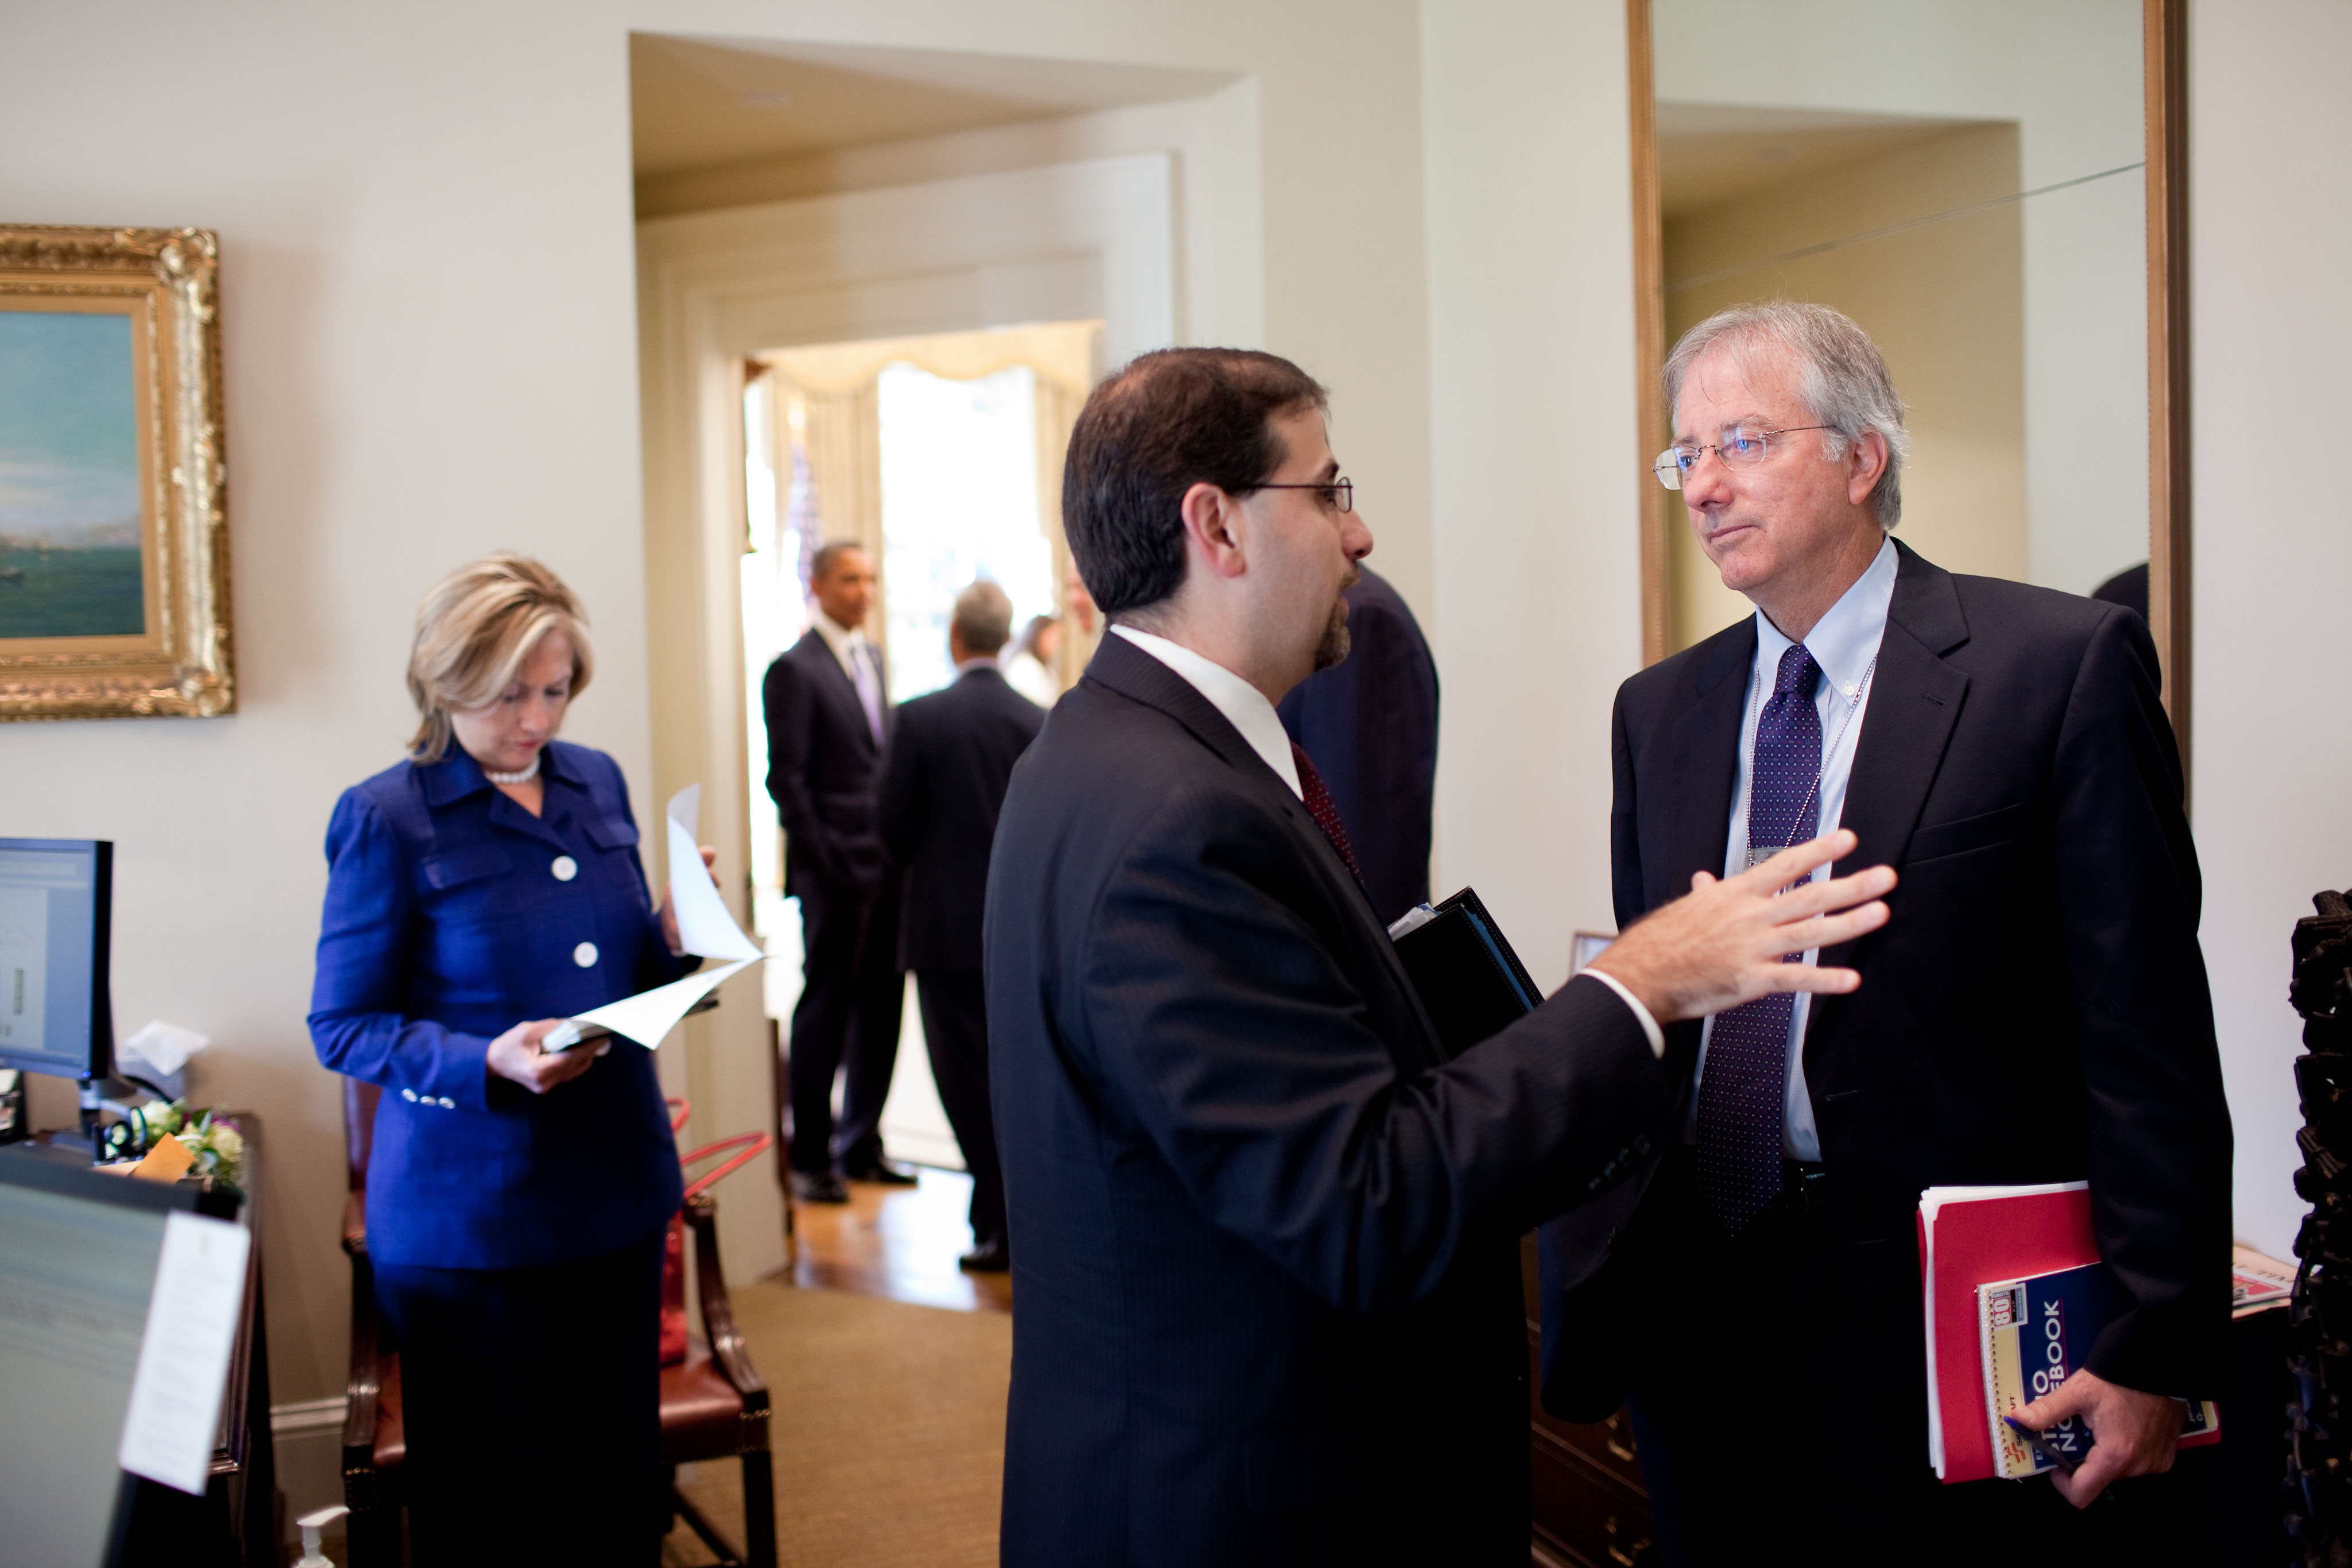 Dennis Ross, at right, with Dan Shapiro, NSC senior director for the Middle East, Oval Office. Secretary of State Hillary Clinton at left. (White House/Pete Souza)